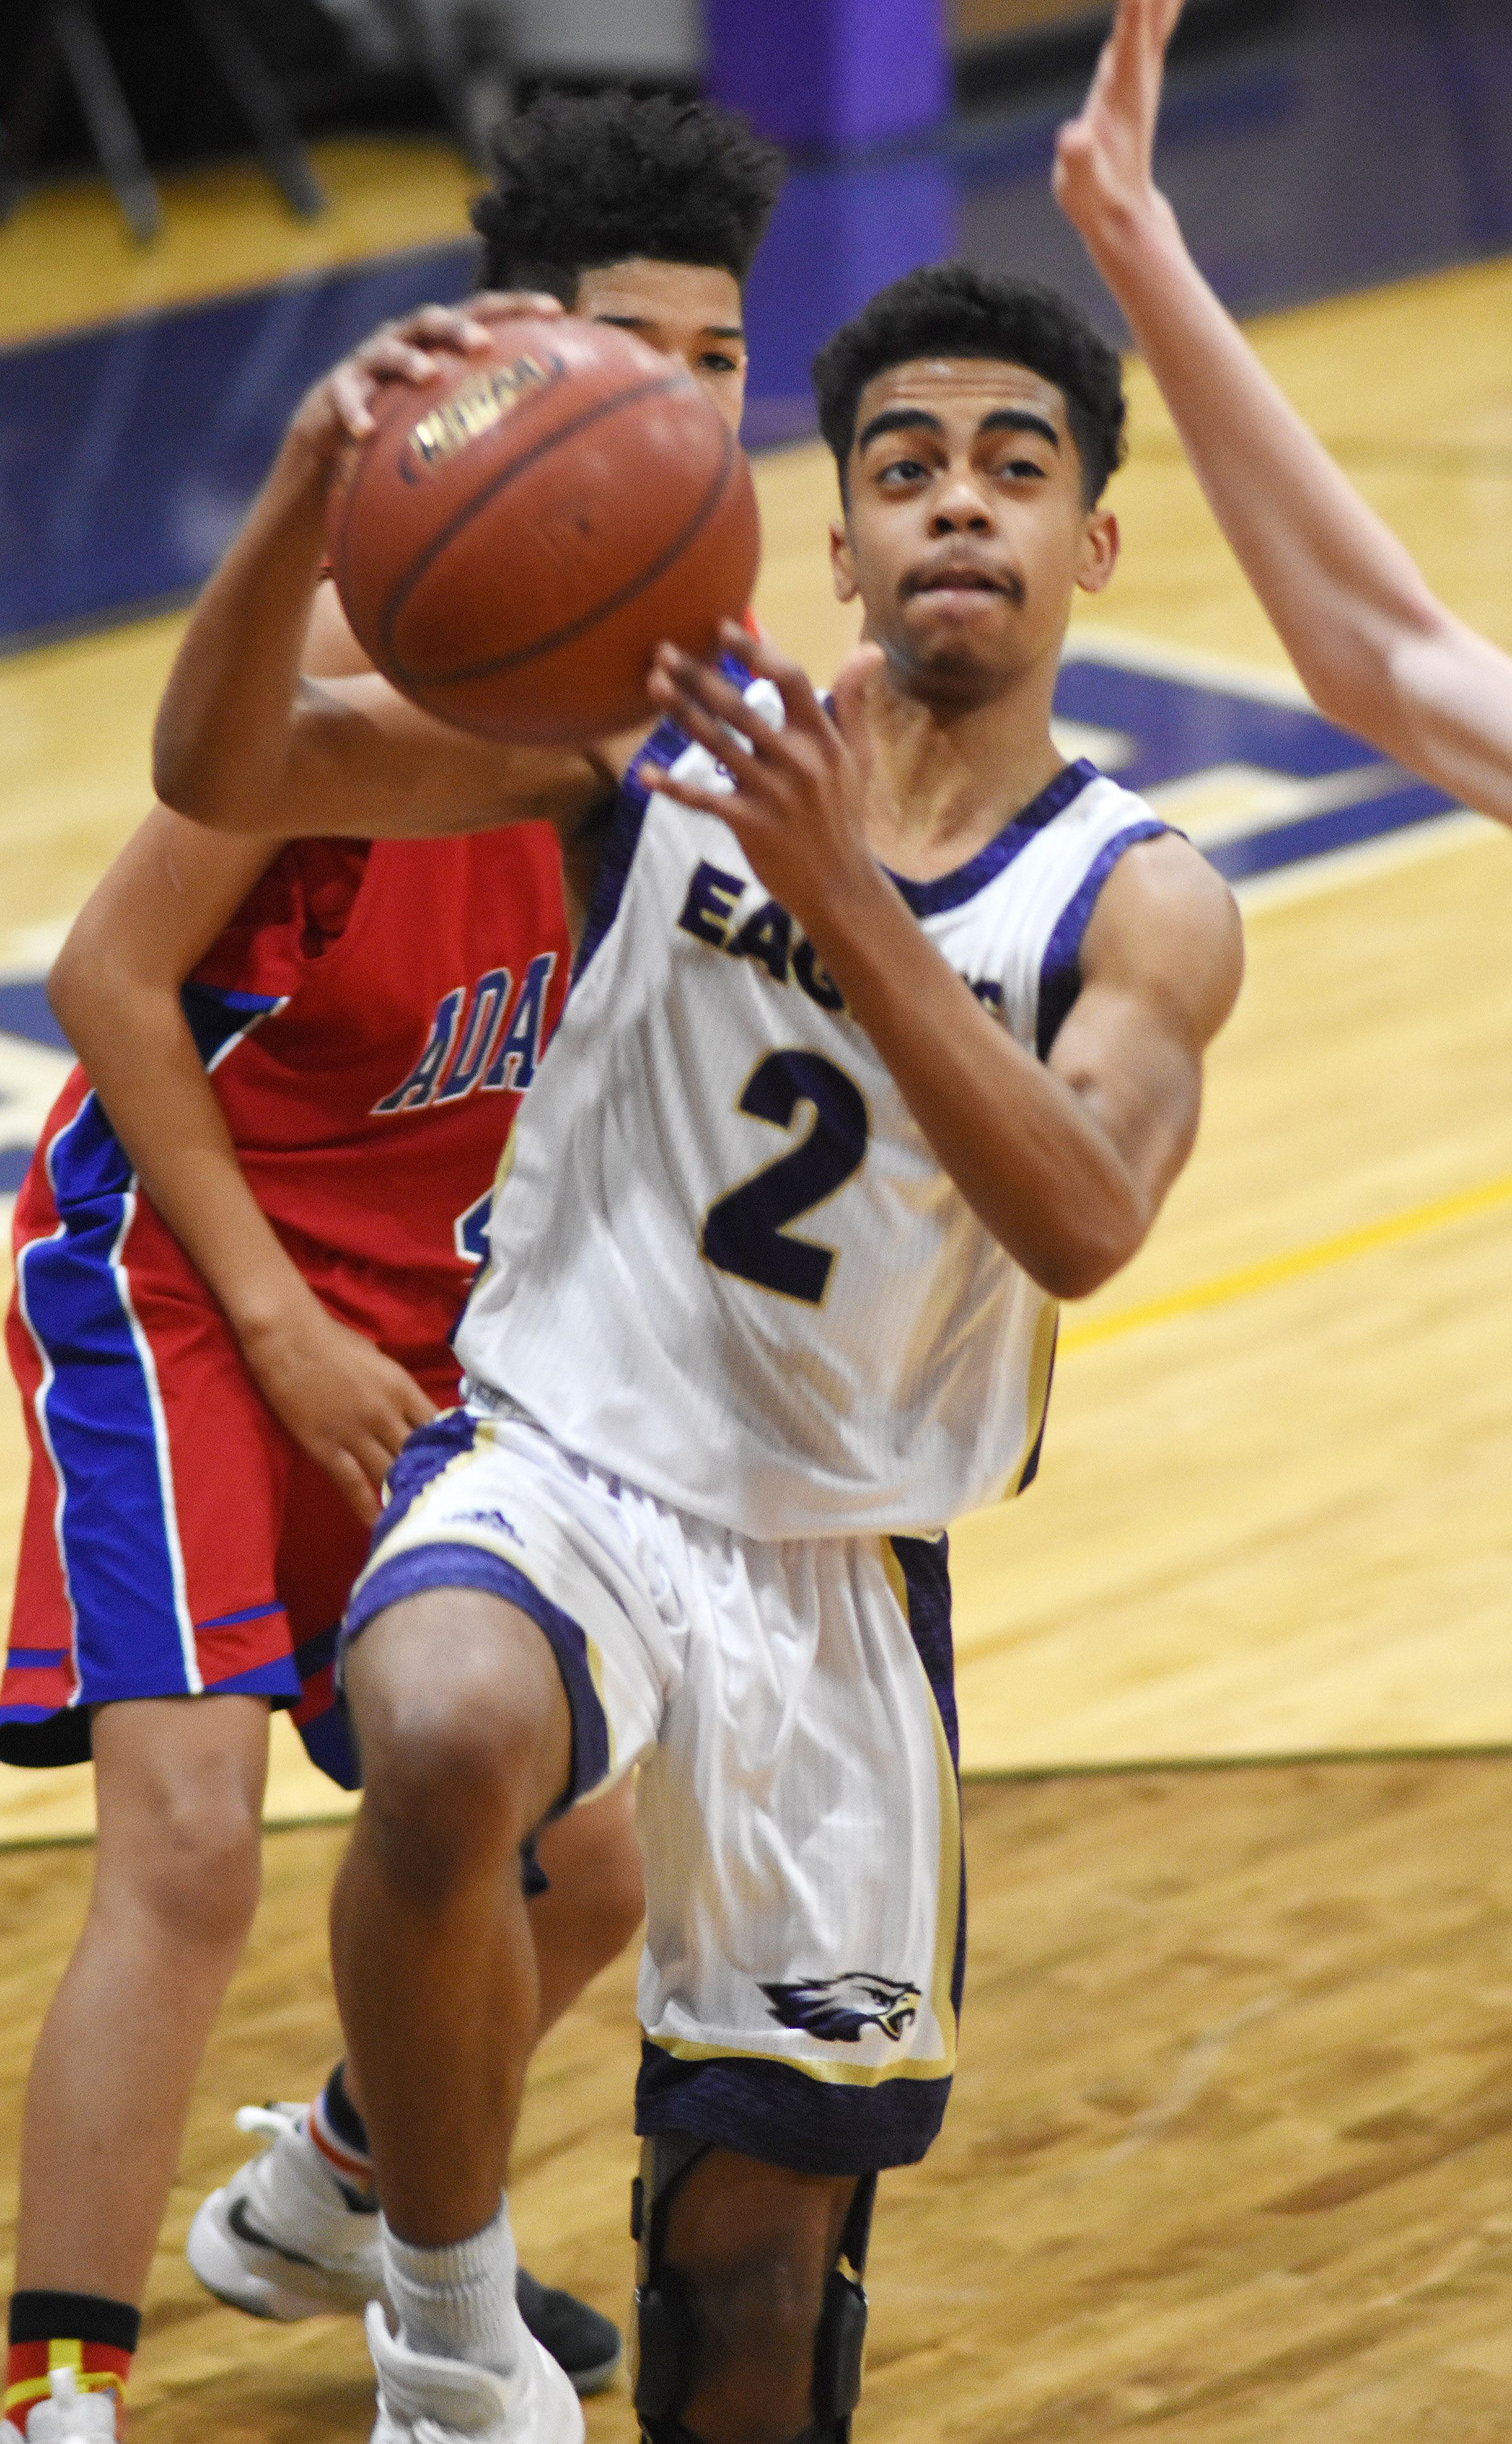 CHS junior Davon Cecil drives the ball to the basket.